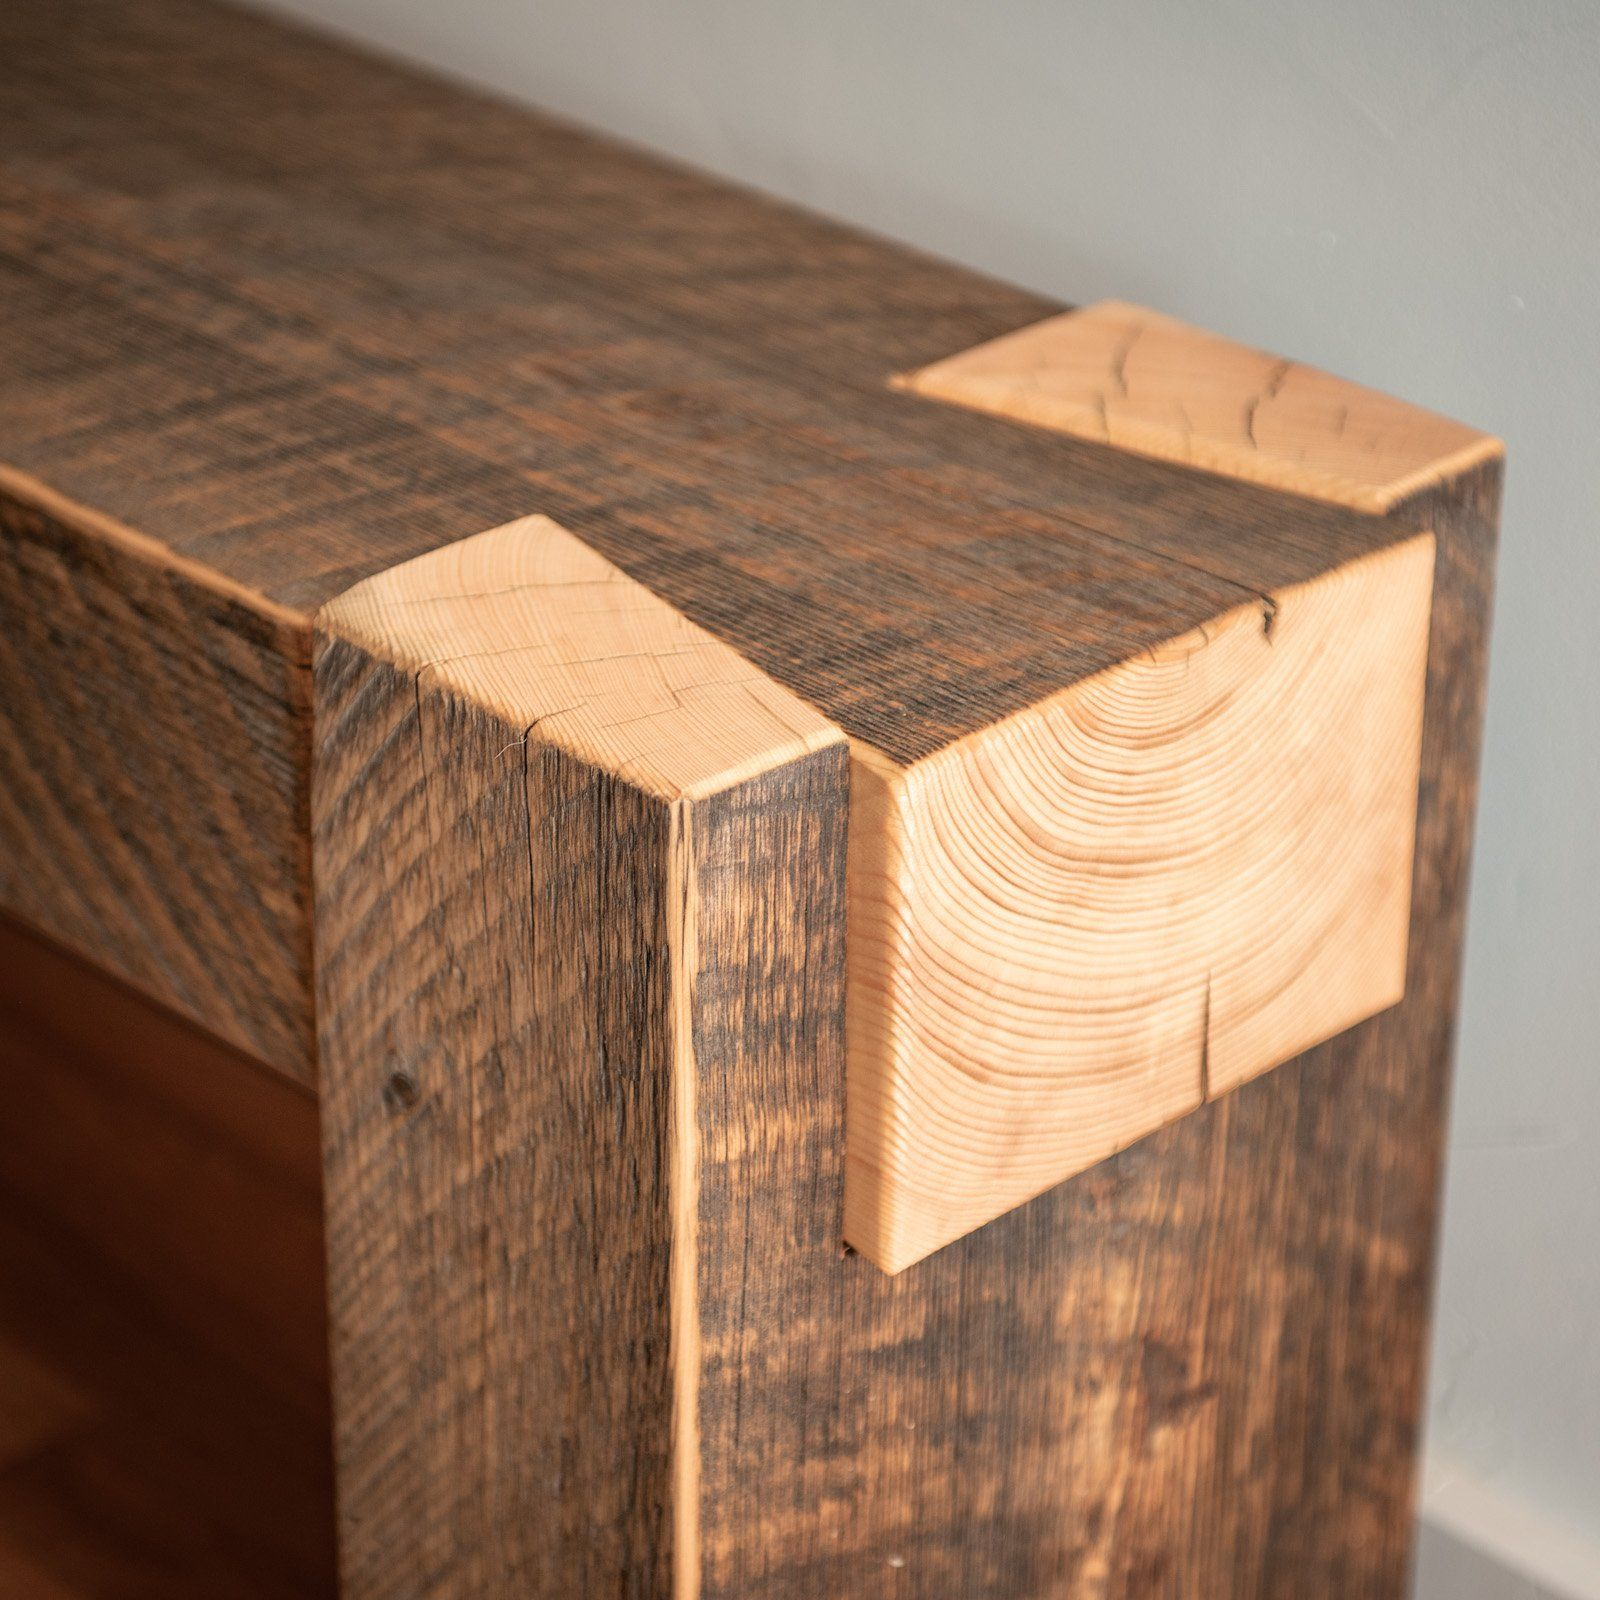 Beam Bench Dovetail From Reclaimed Spruce Reclaimed Wood Benches Wood Joinery Wood